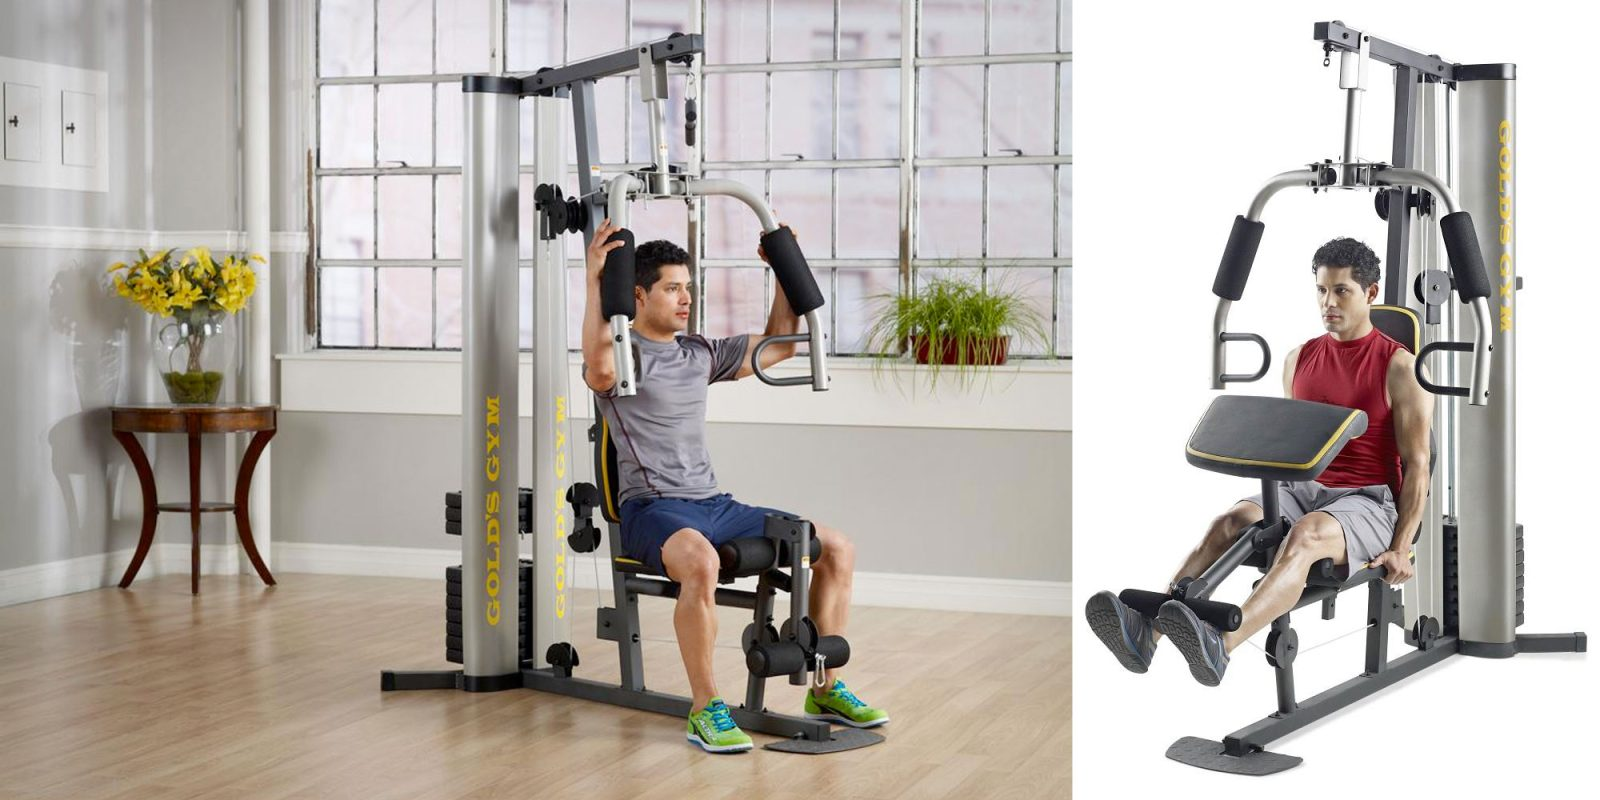 Stay fit with the Gold's Gym Strength Training System at $277 (Reg. $345)